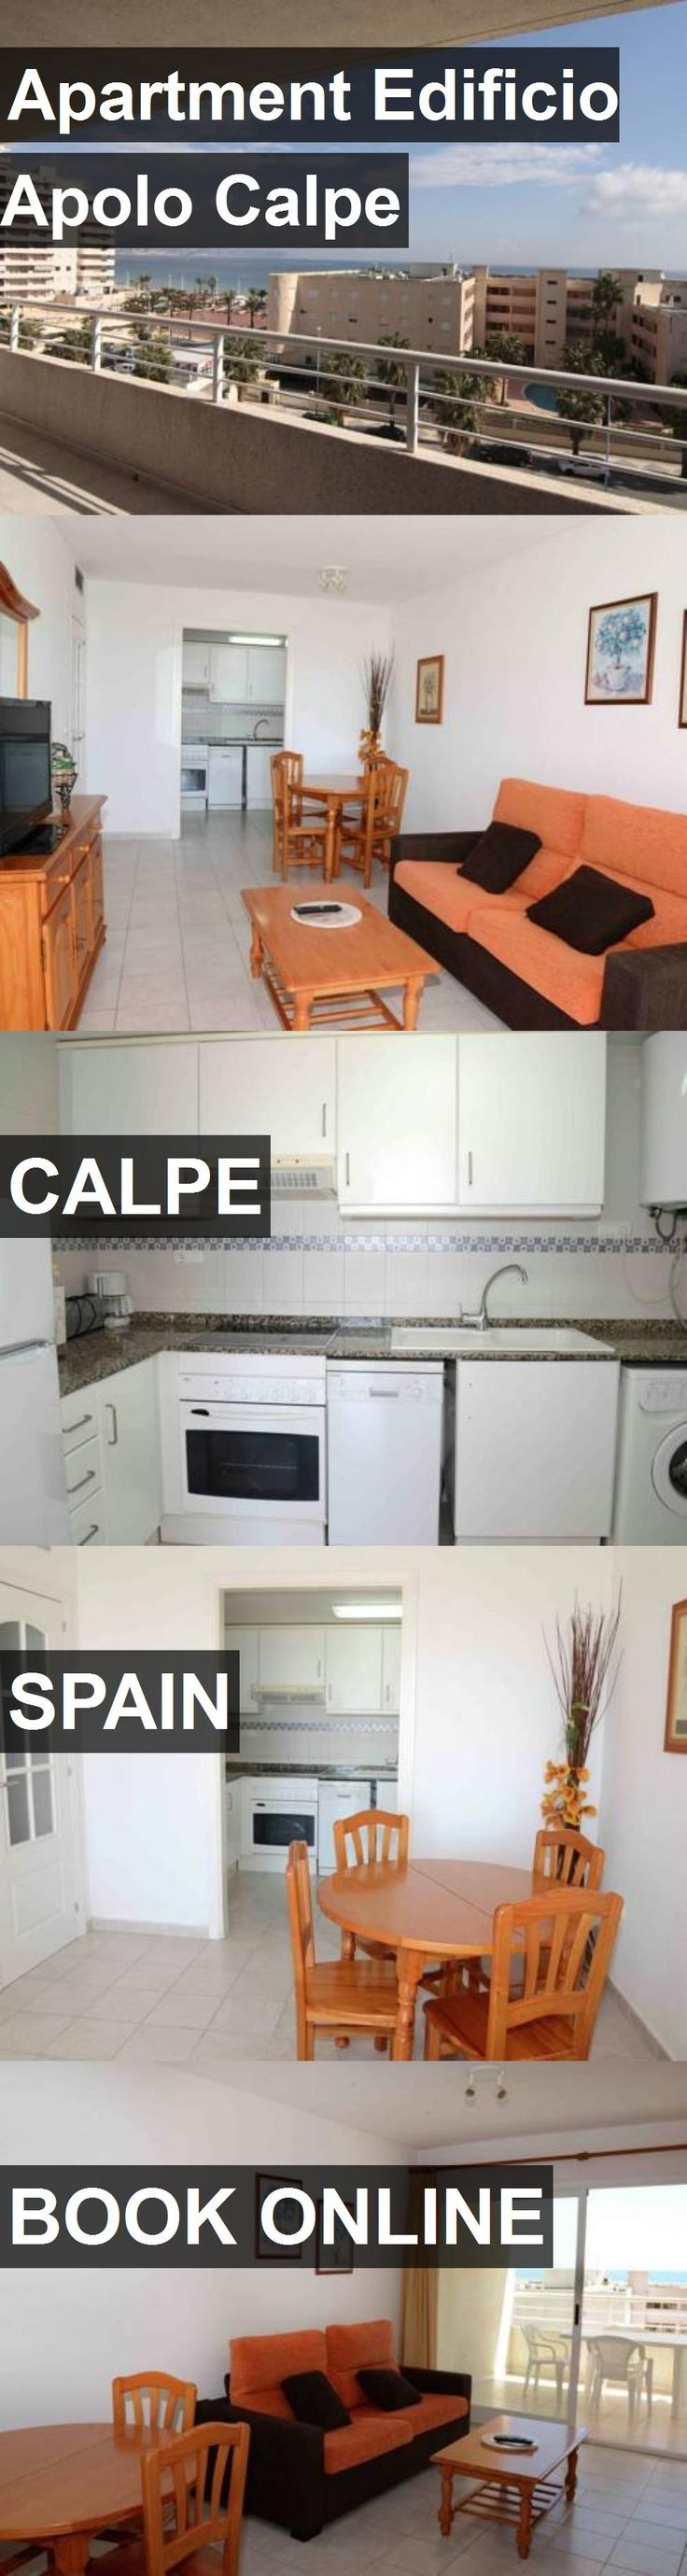 Hotel Apartment Edificio Apolo Calpe in Calpe, Spain. For more information, photos, reviews and best prices please follow the link. #Spain #Calpe #ApartmentEdificioApoloCalpe #hotel #travel #vacation